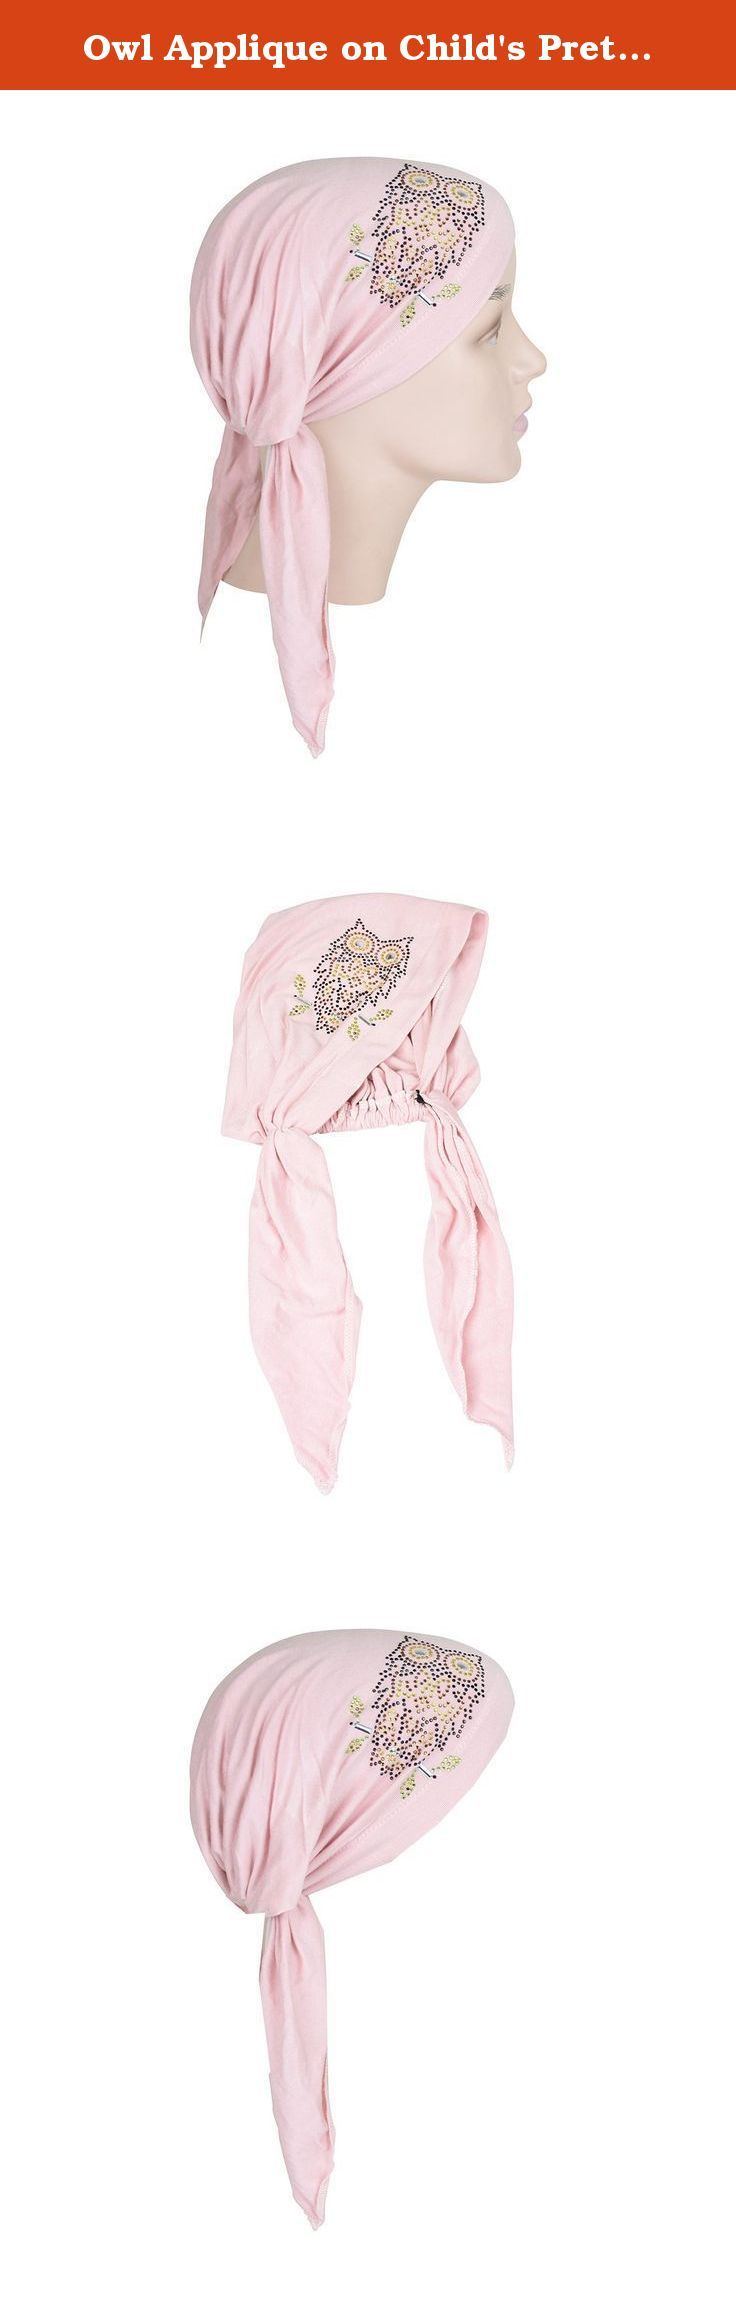 cap sur le cancer enfants foulard enfant connat childs pretied pretied head scarf cancer perfect headcover kids ages ages 4